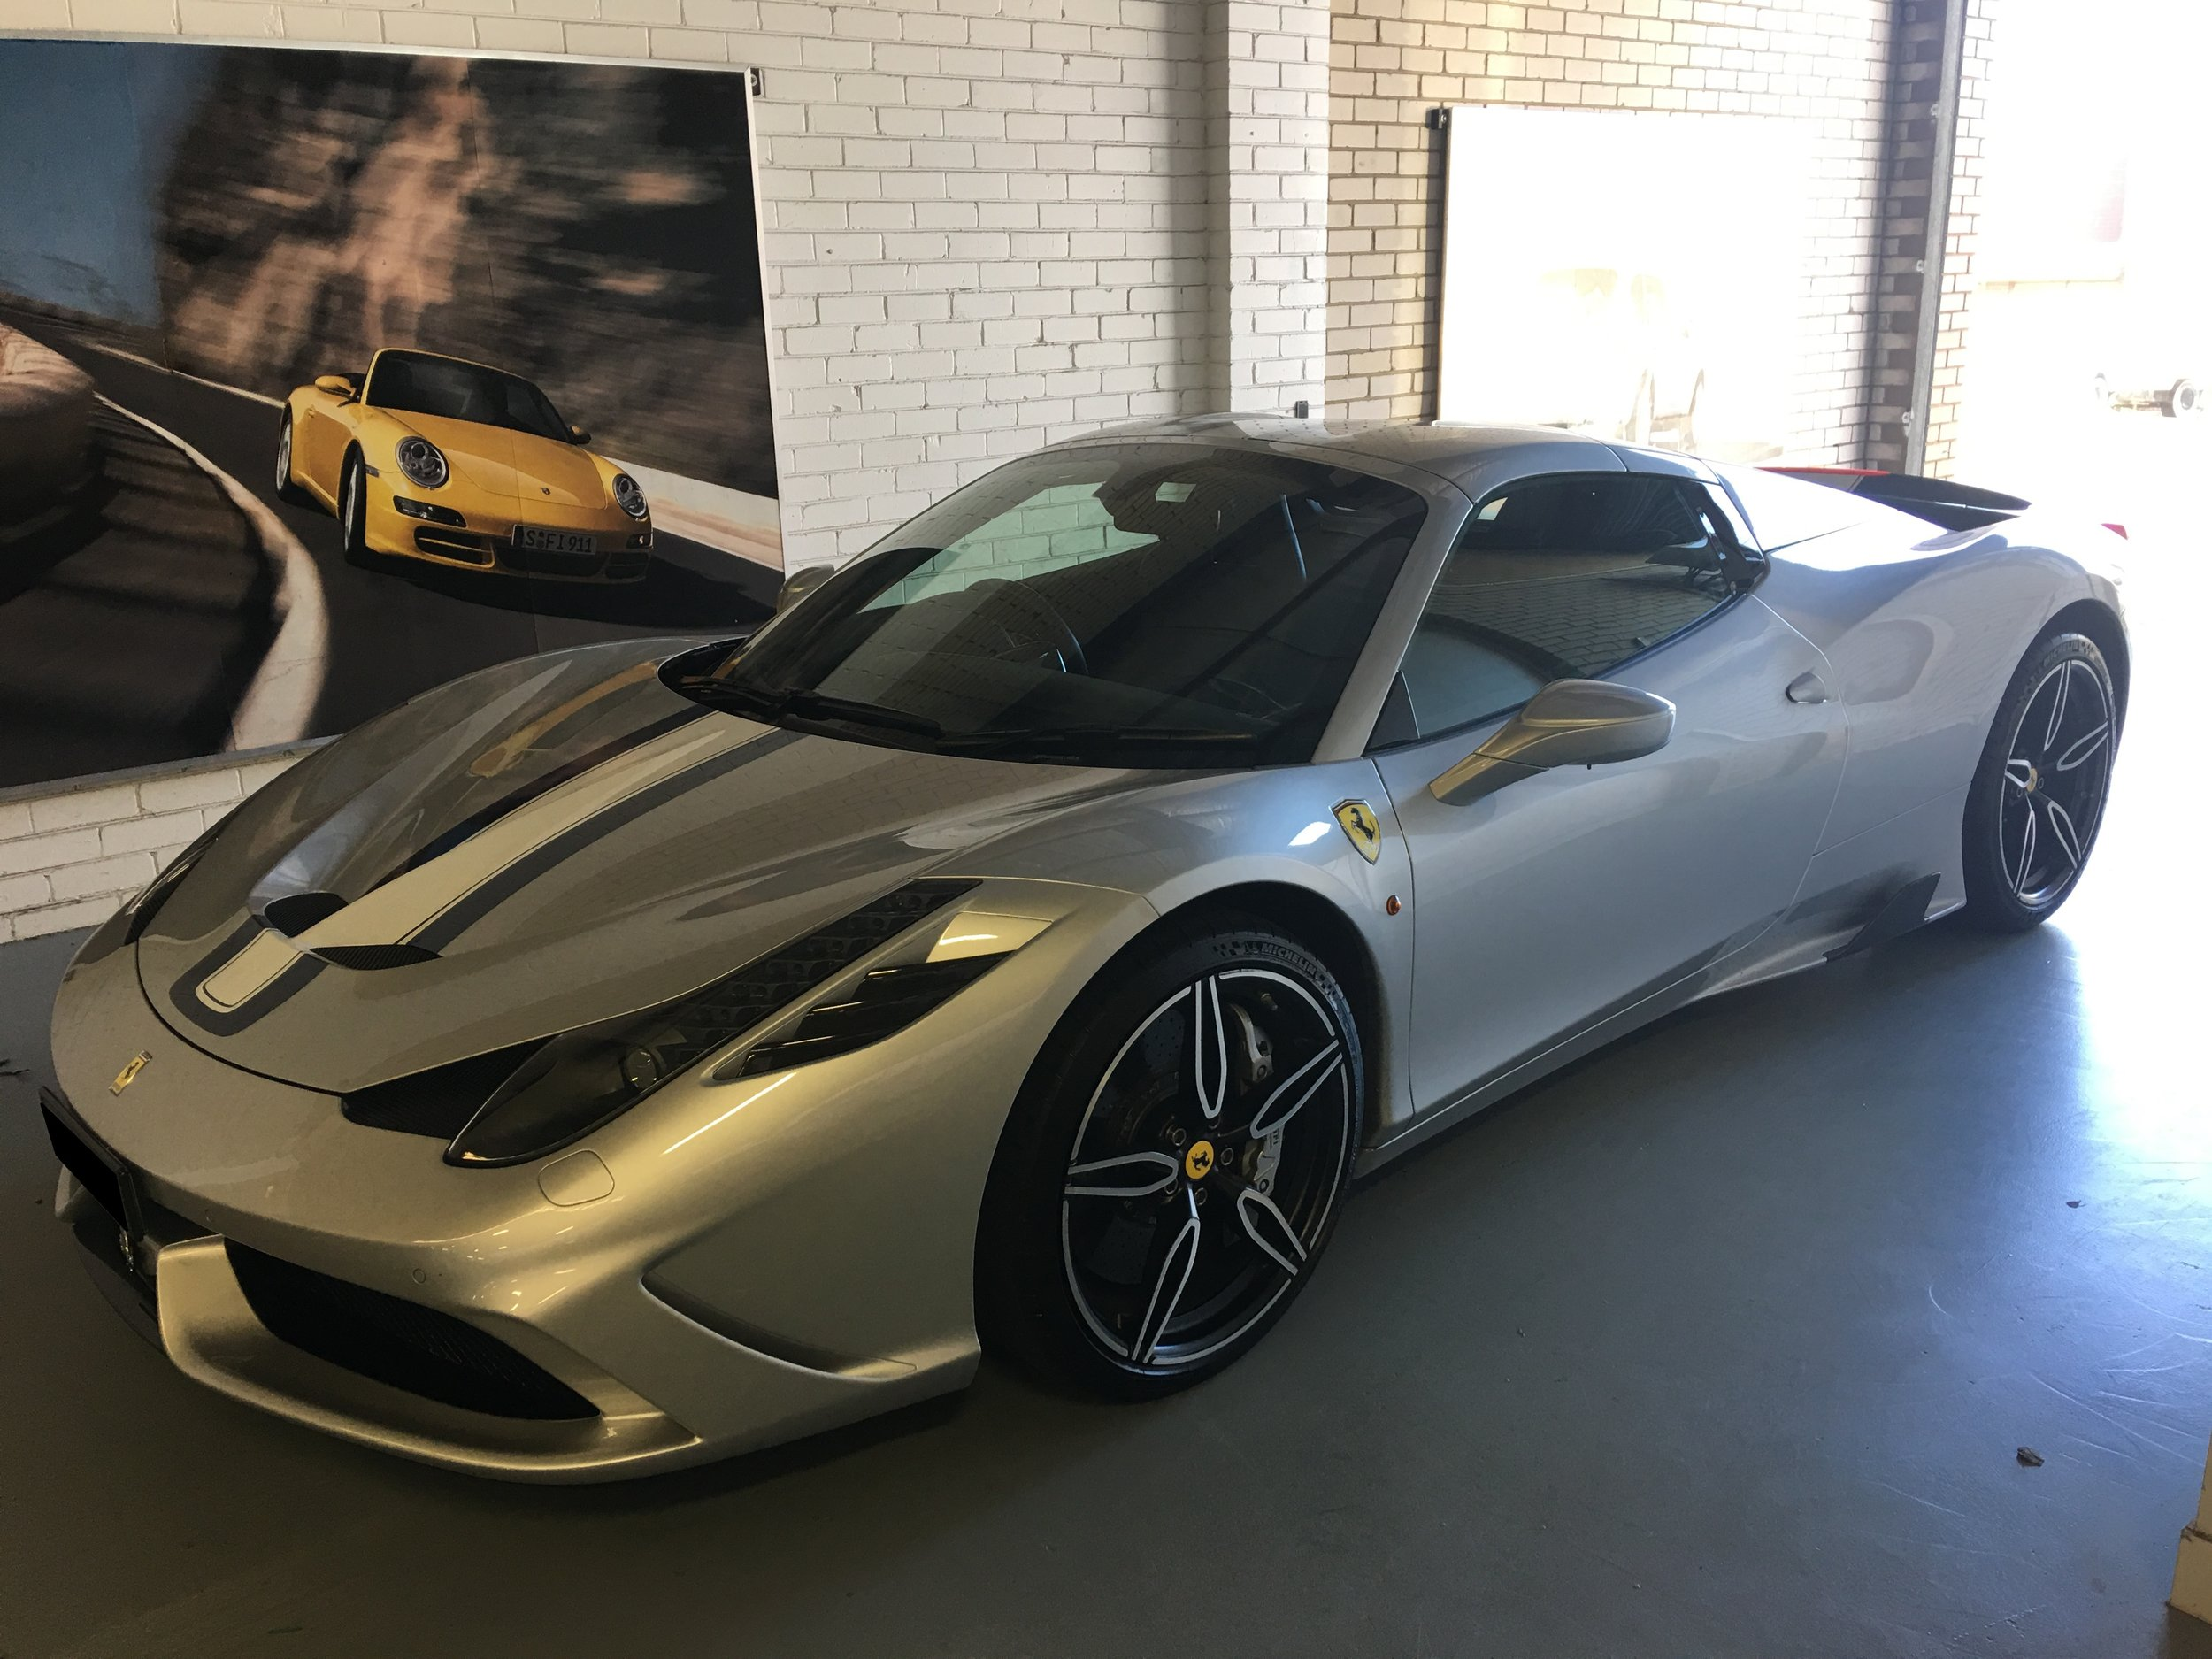 A Ferrari 458 Speciale Aperta equipped with AIS tracking